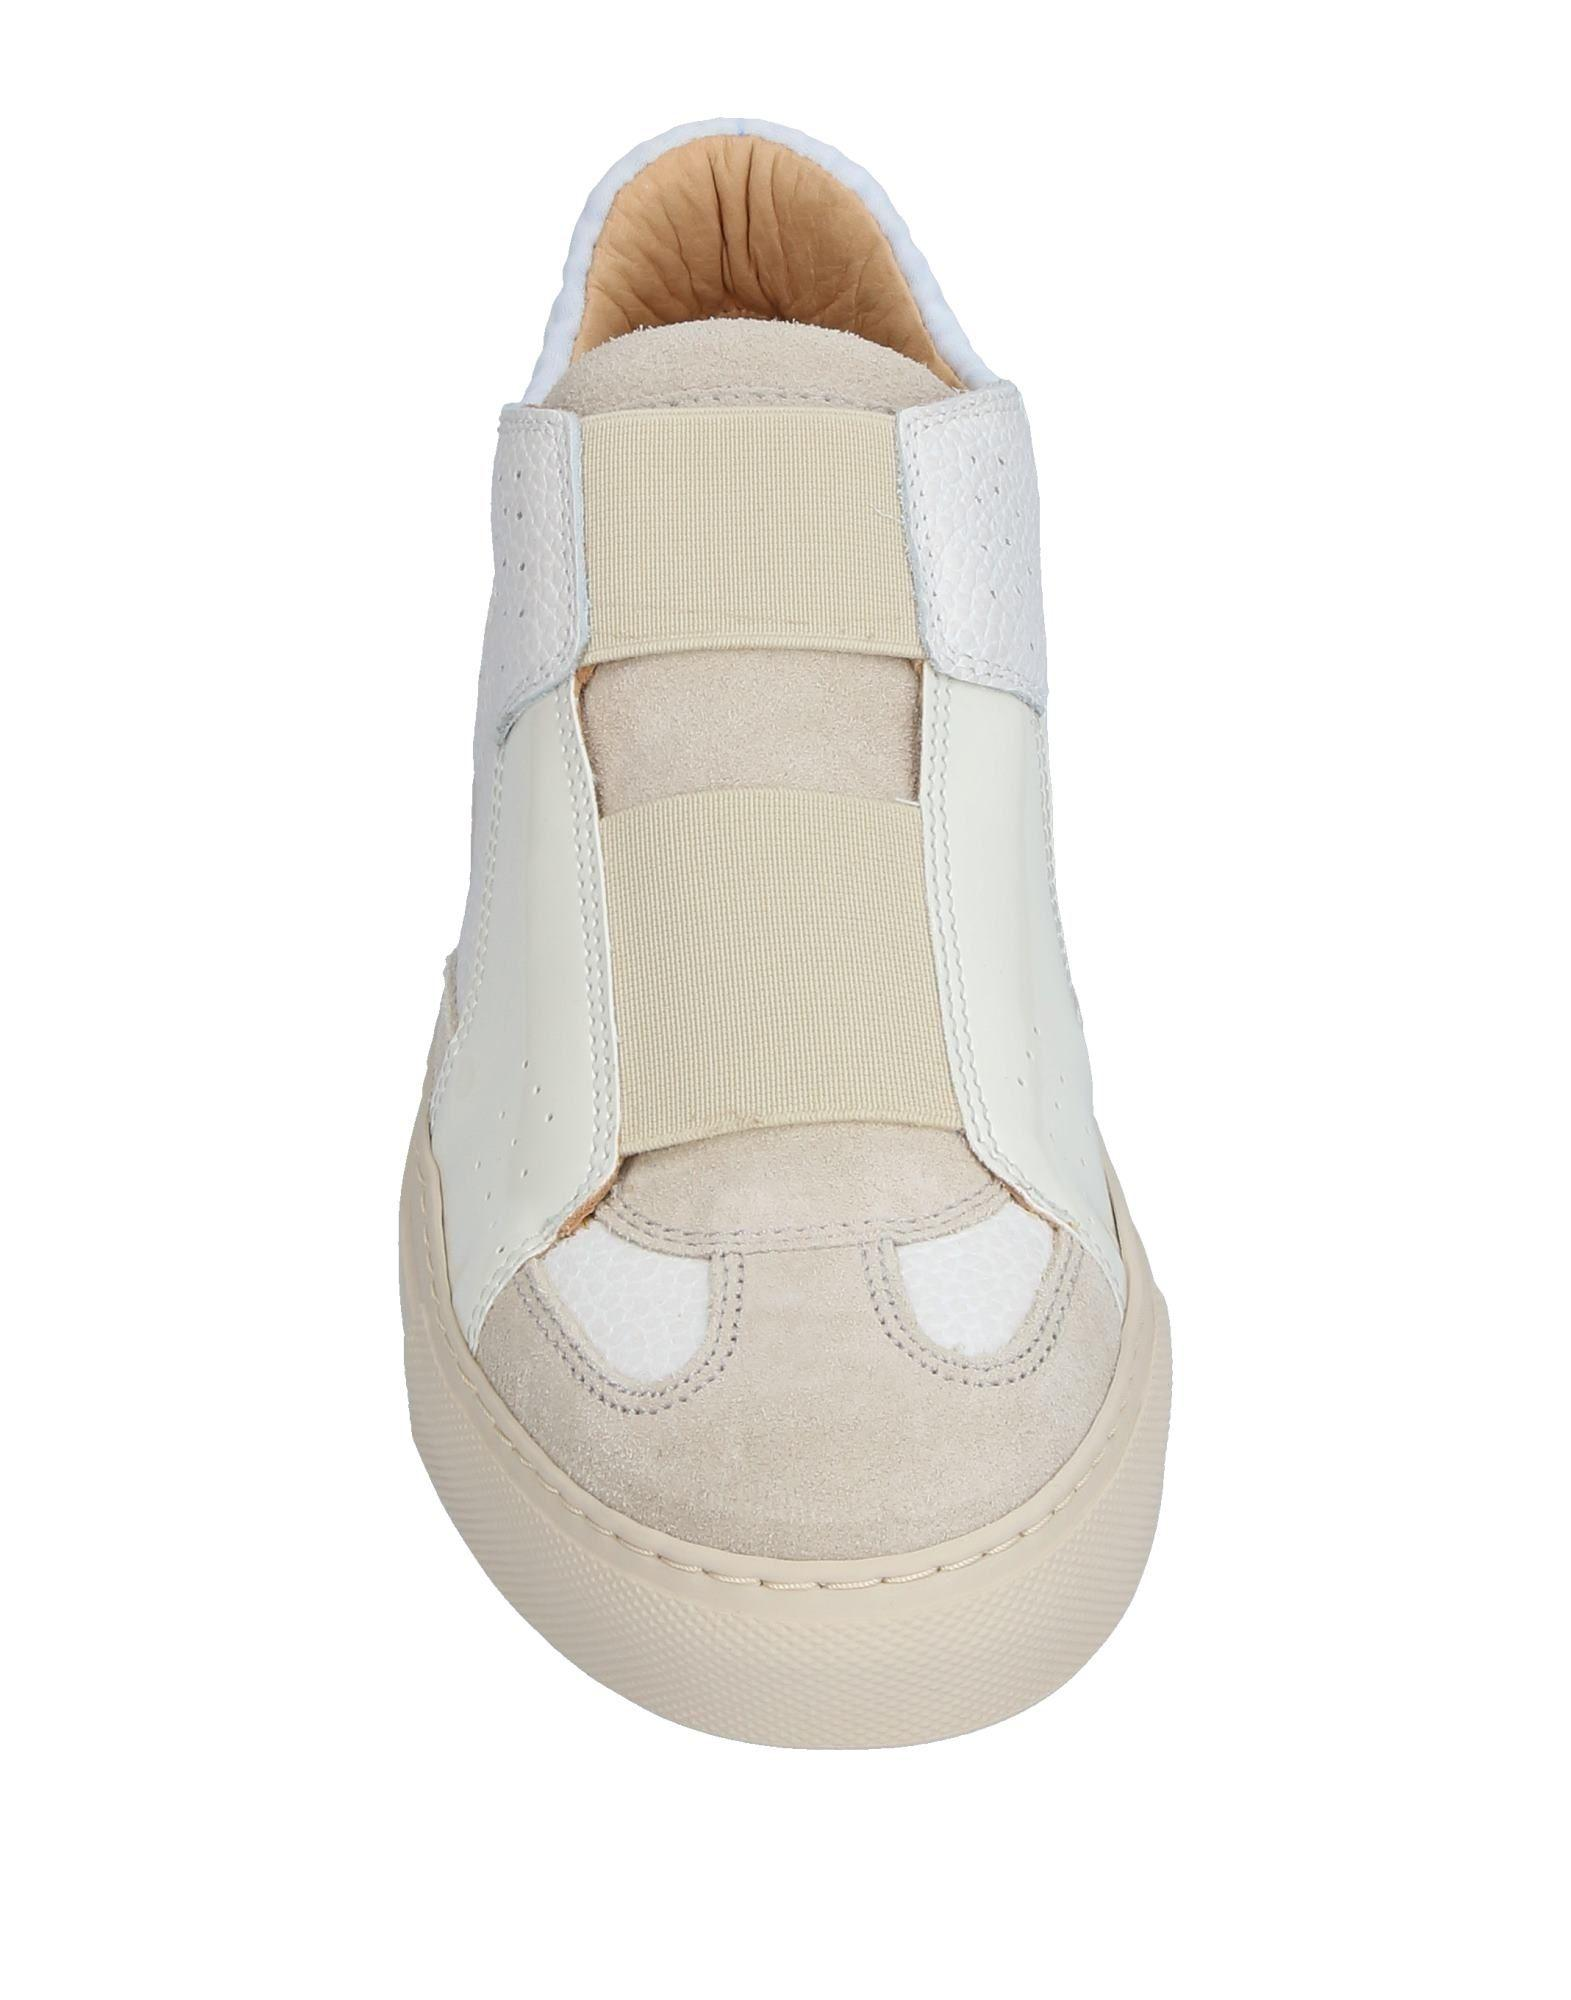 MM6 by Maison Martin Margiela Leather Low-tops & Sneakers in Ivory (White)